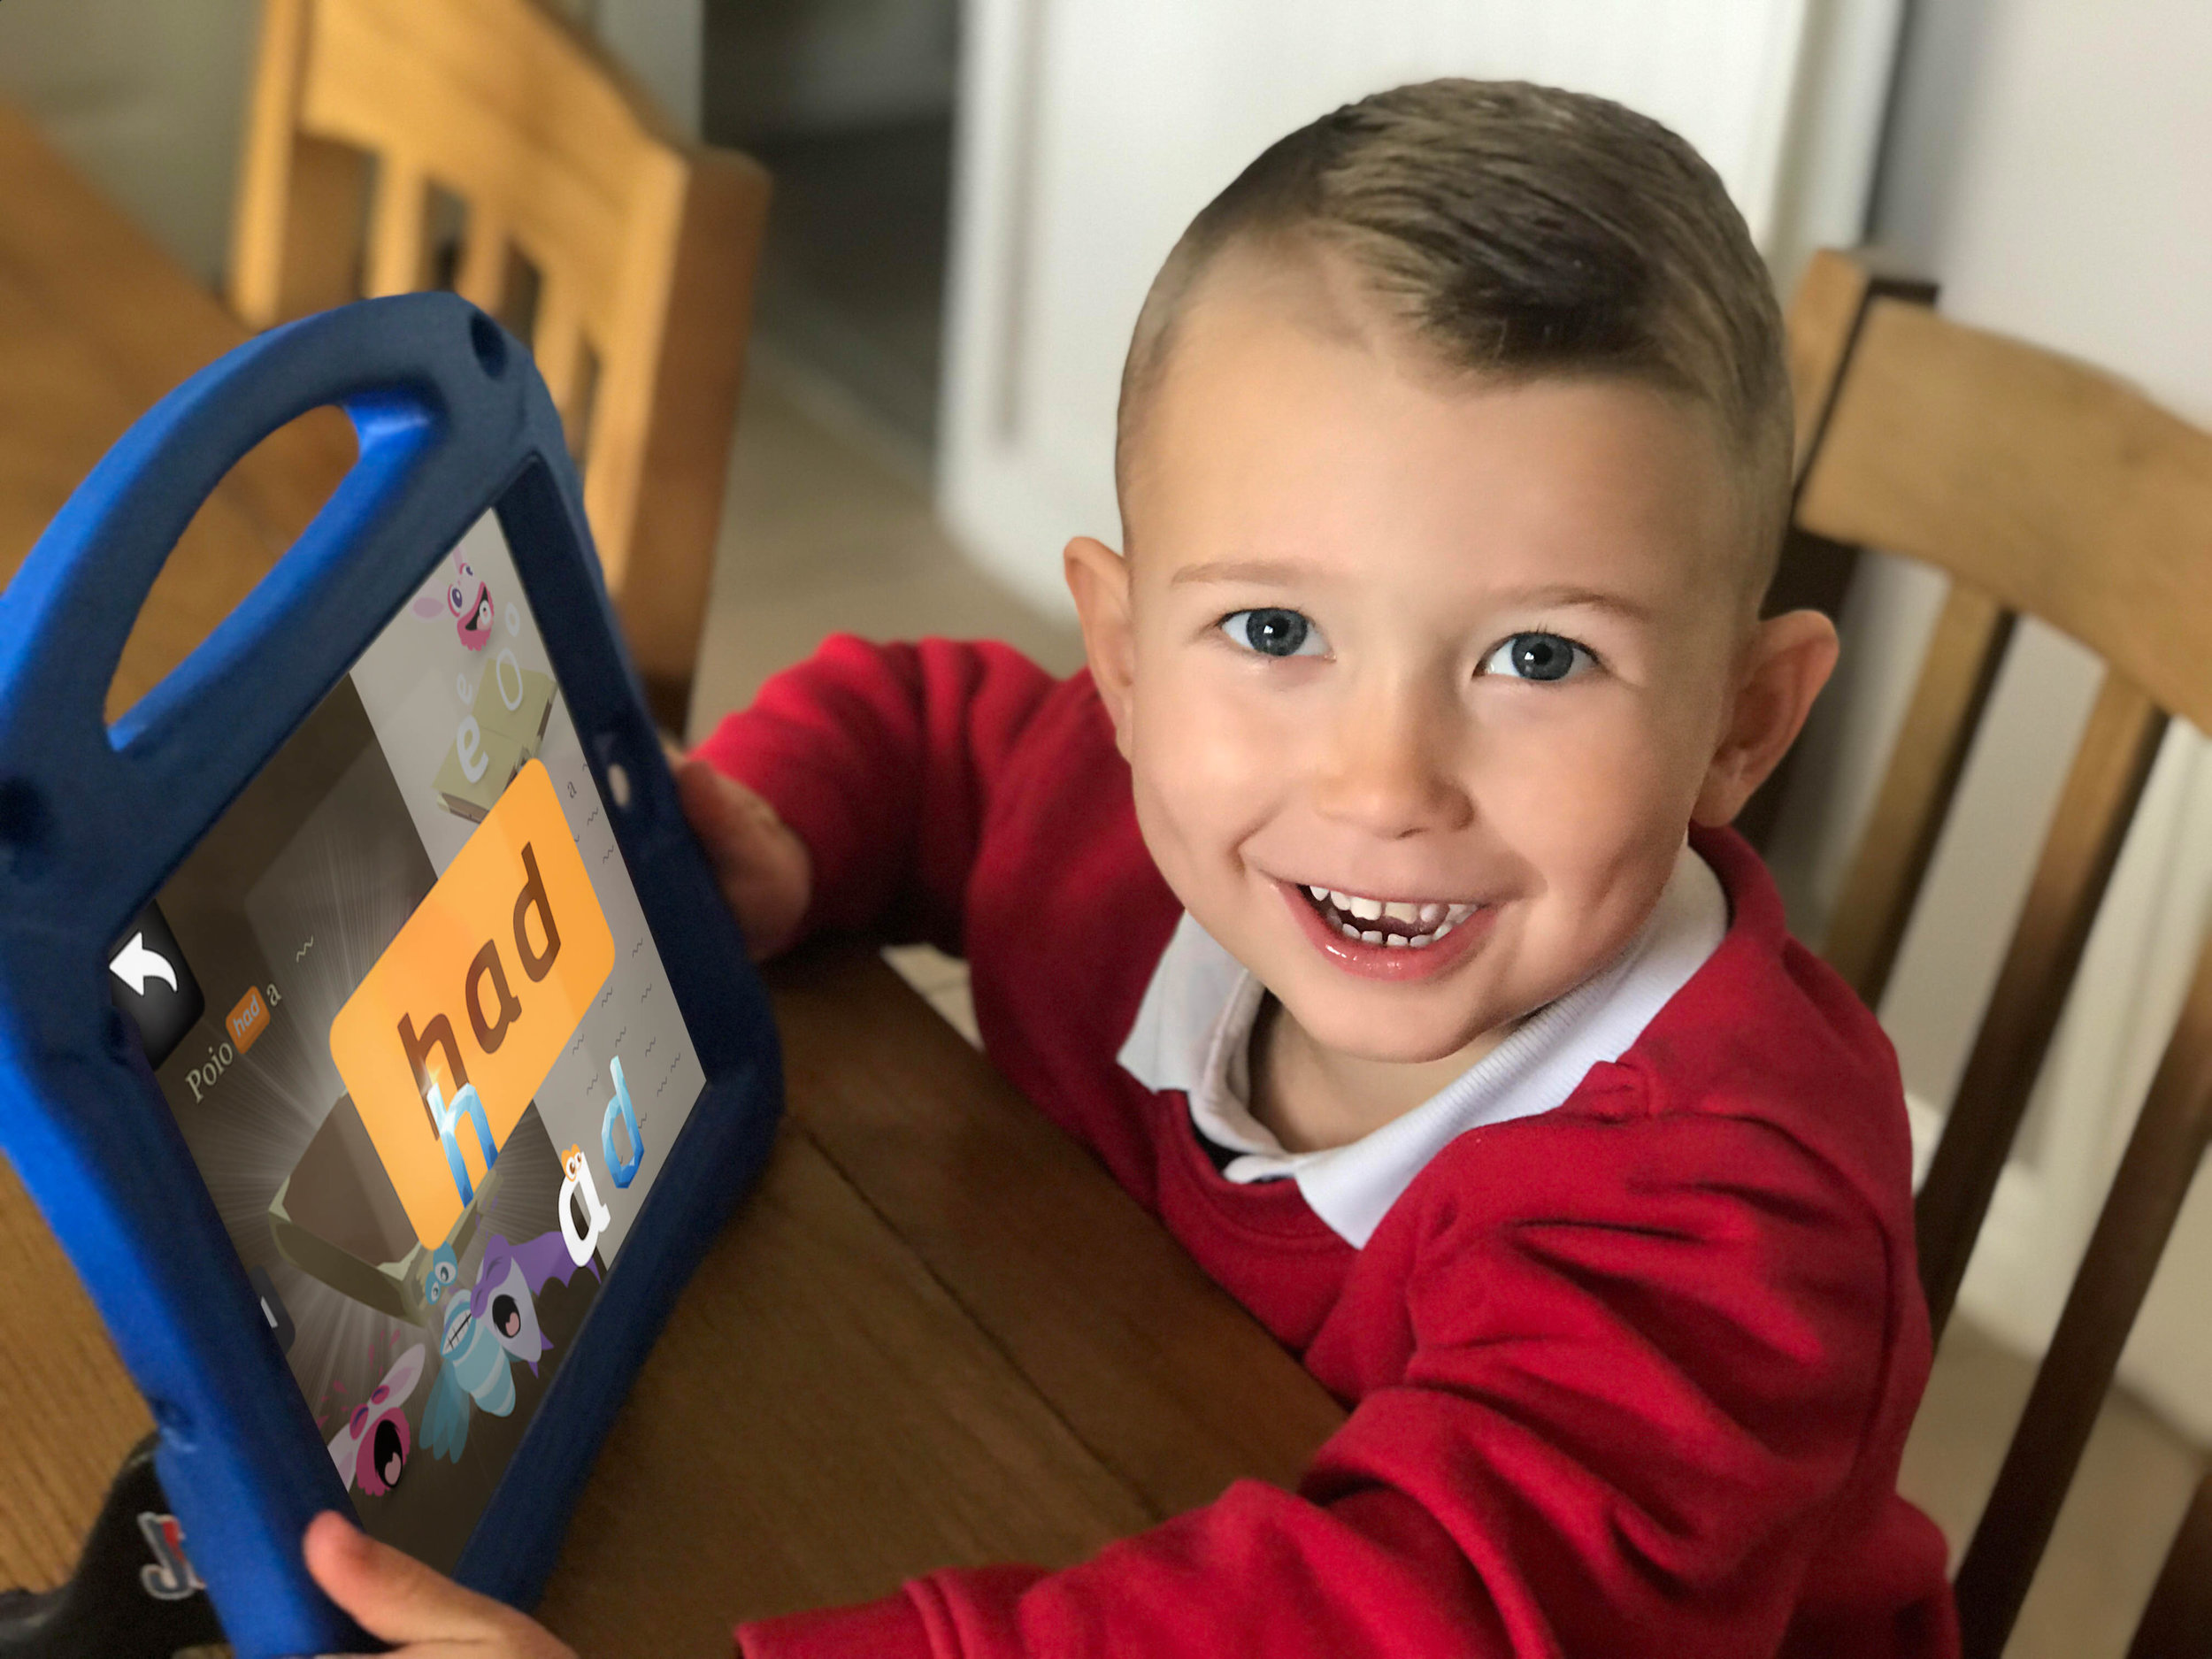 Joanne's son having fun while learning to read with Poio. (Photo: Private)